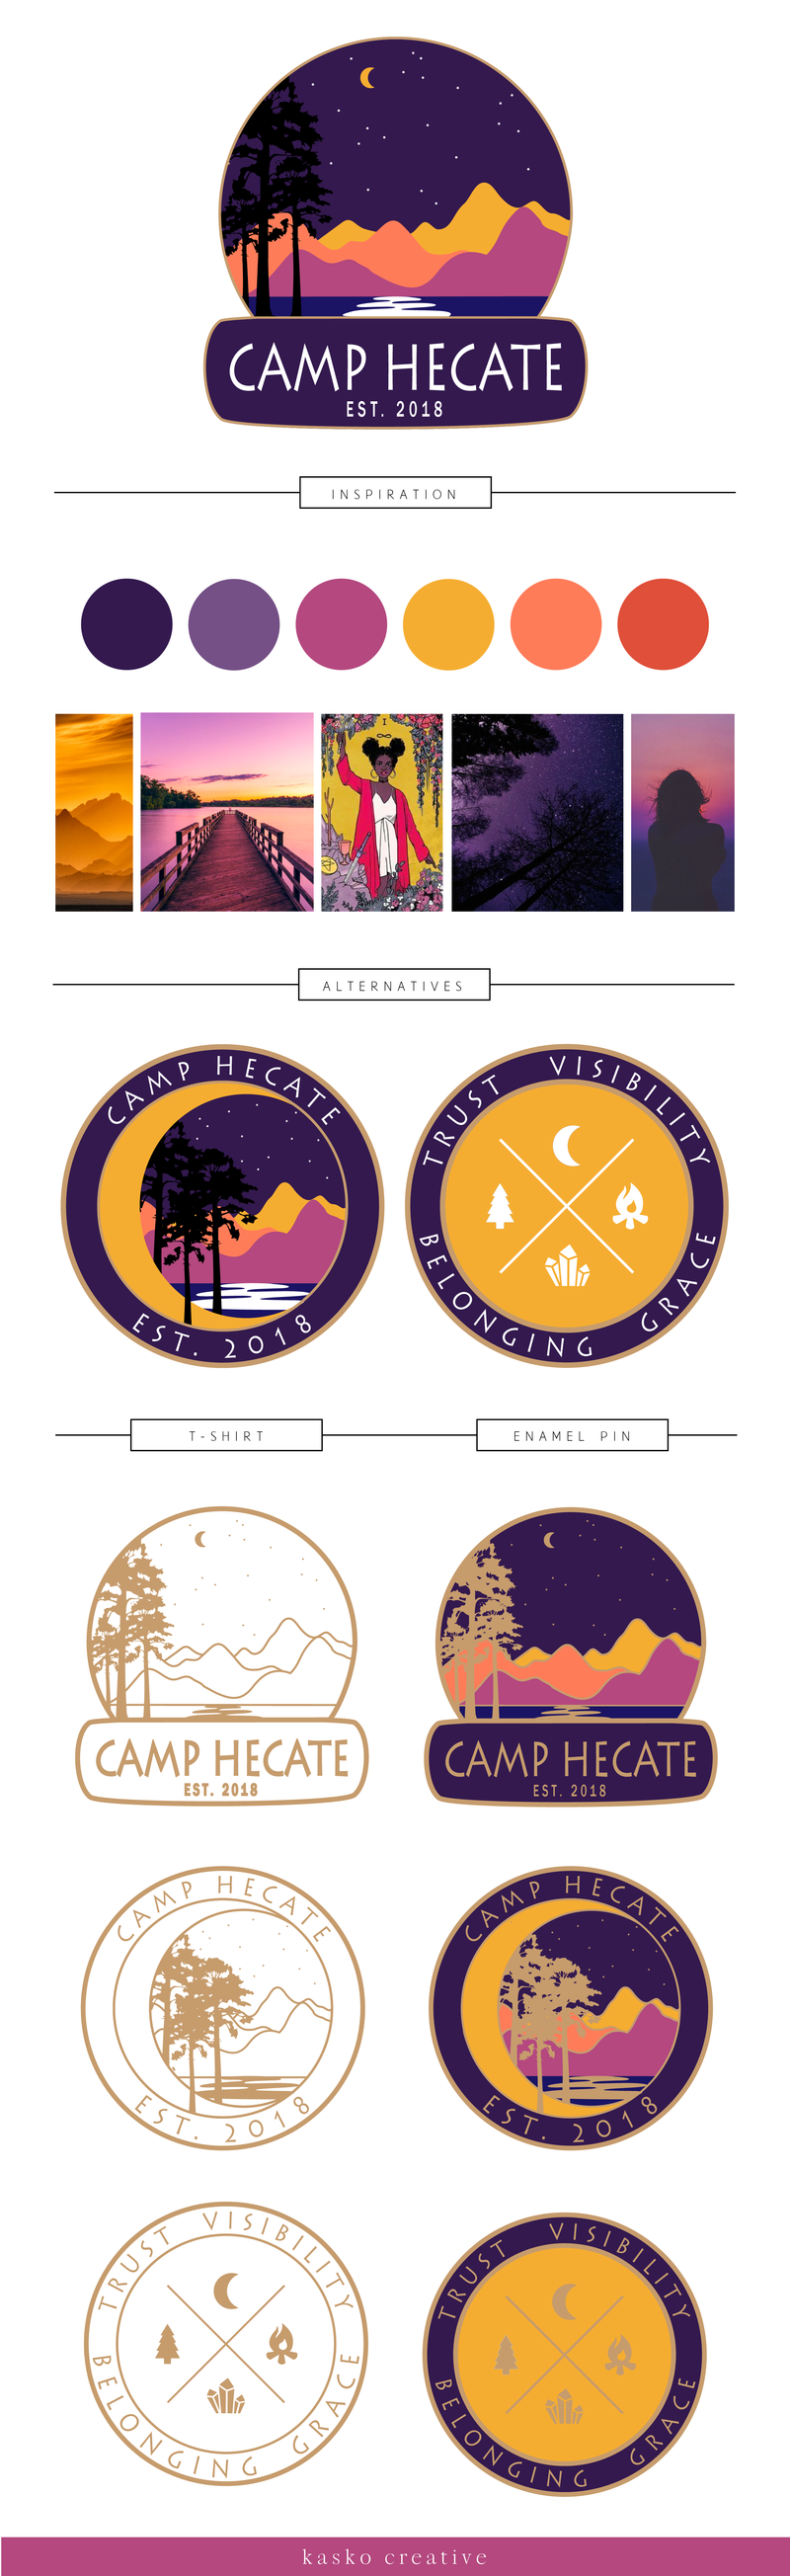 Camp Hecate Brand Board